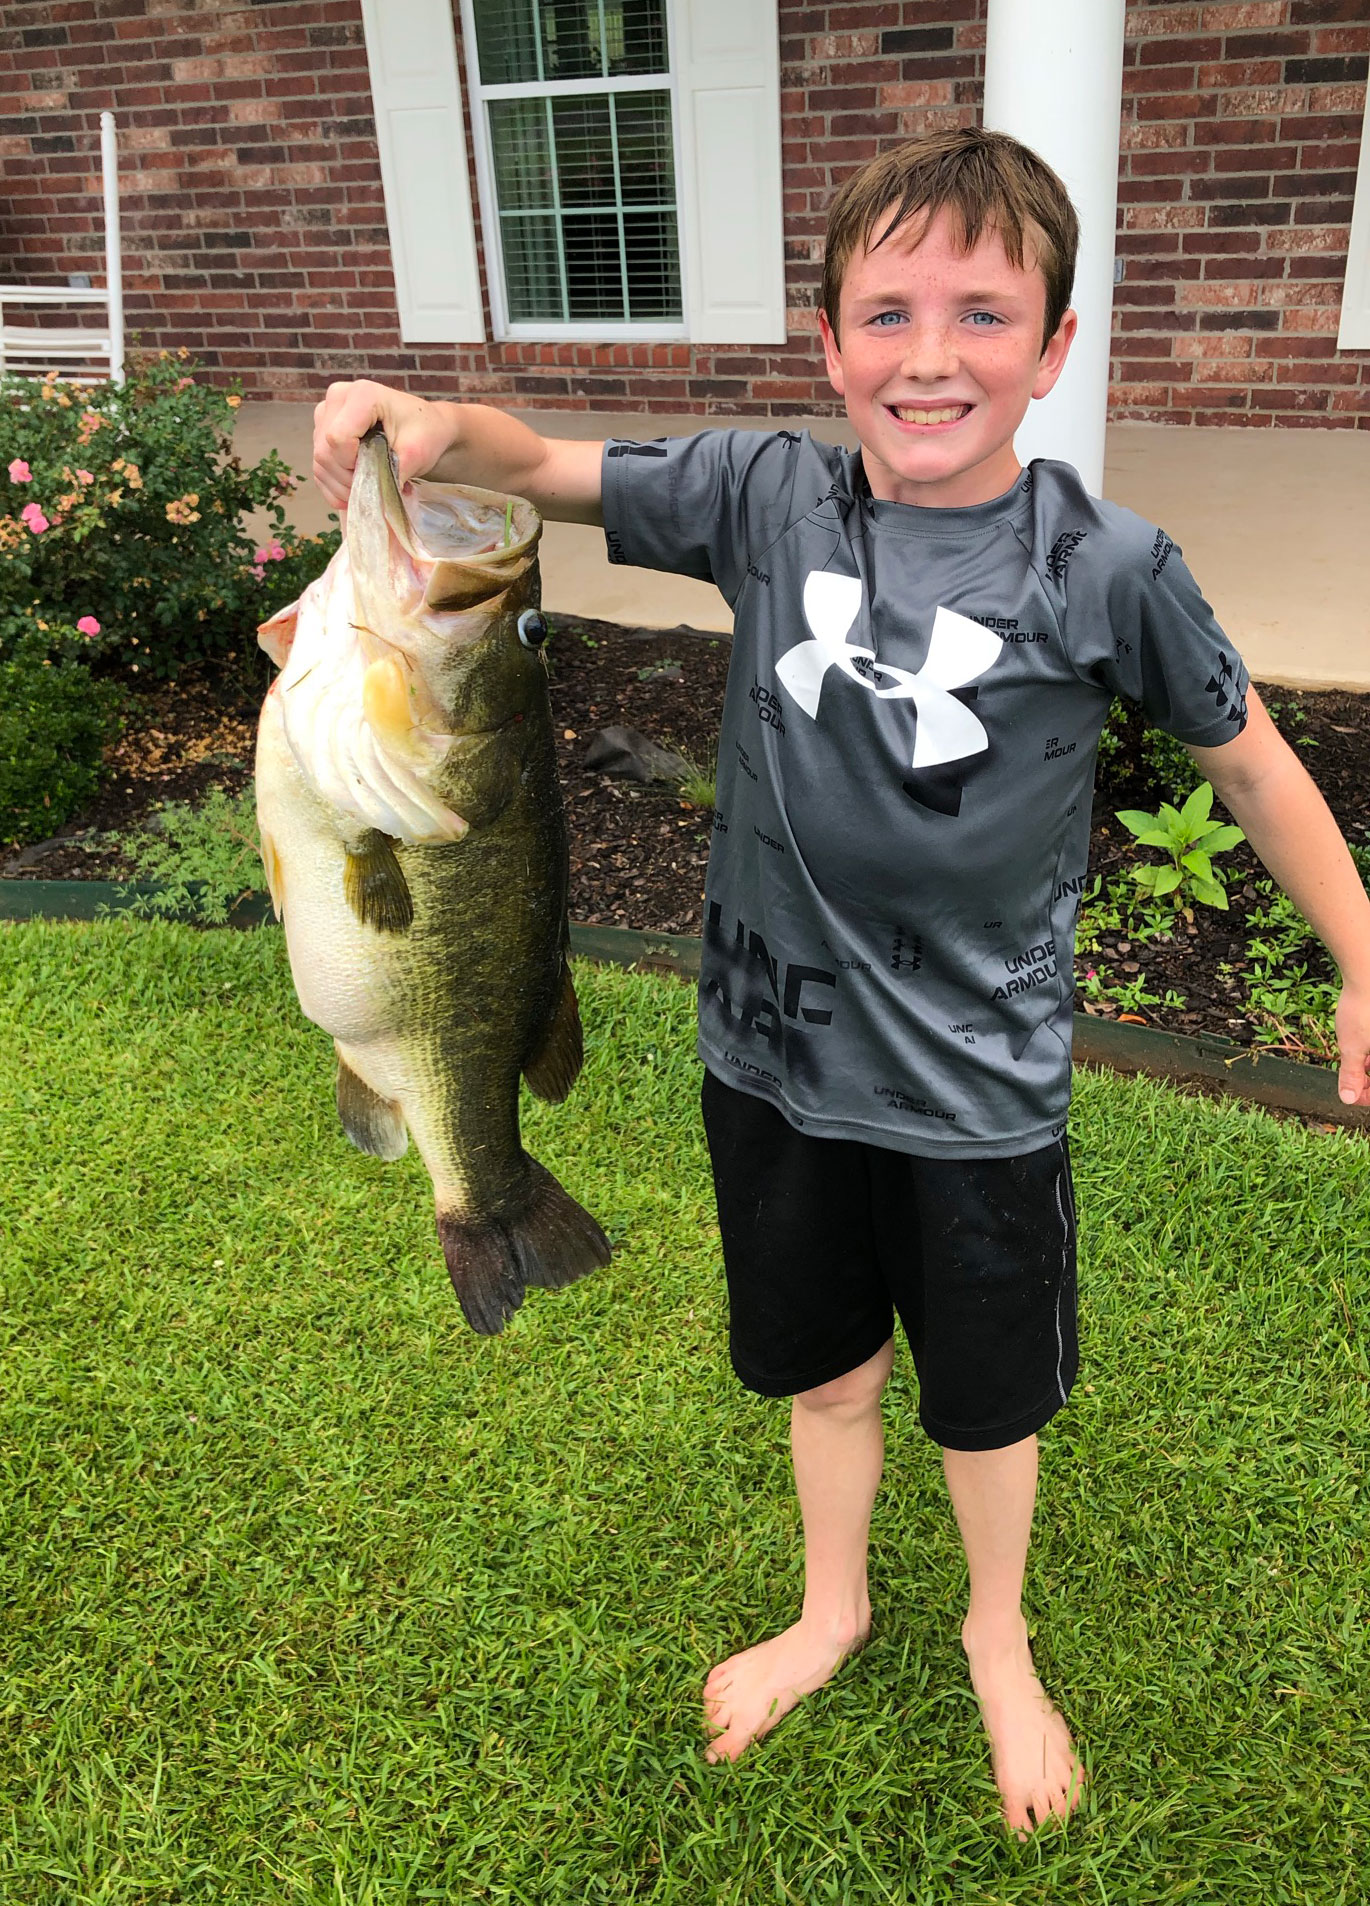 Ten-year-old Landon Smith with the 12.05-pound largemouth bass he caught from a private pond near Atlanta, La., on July 18, 2021.